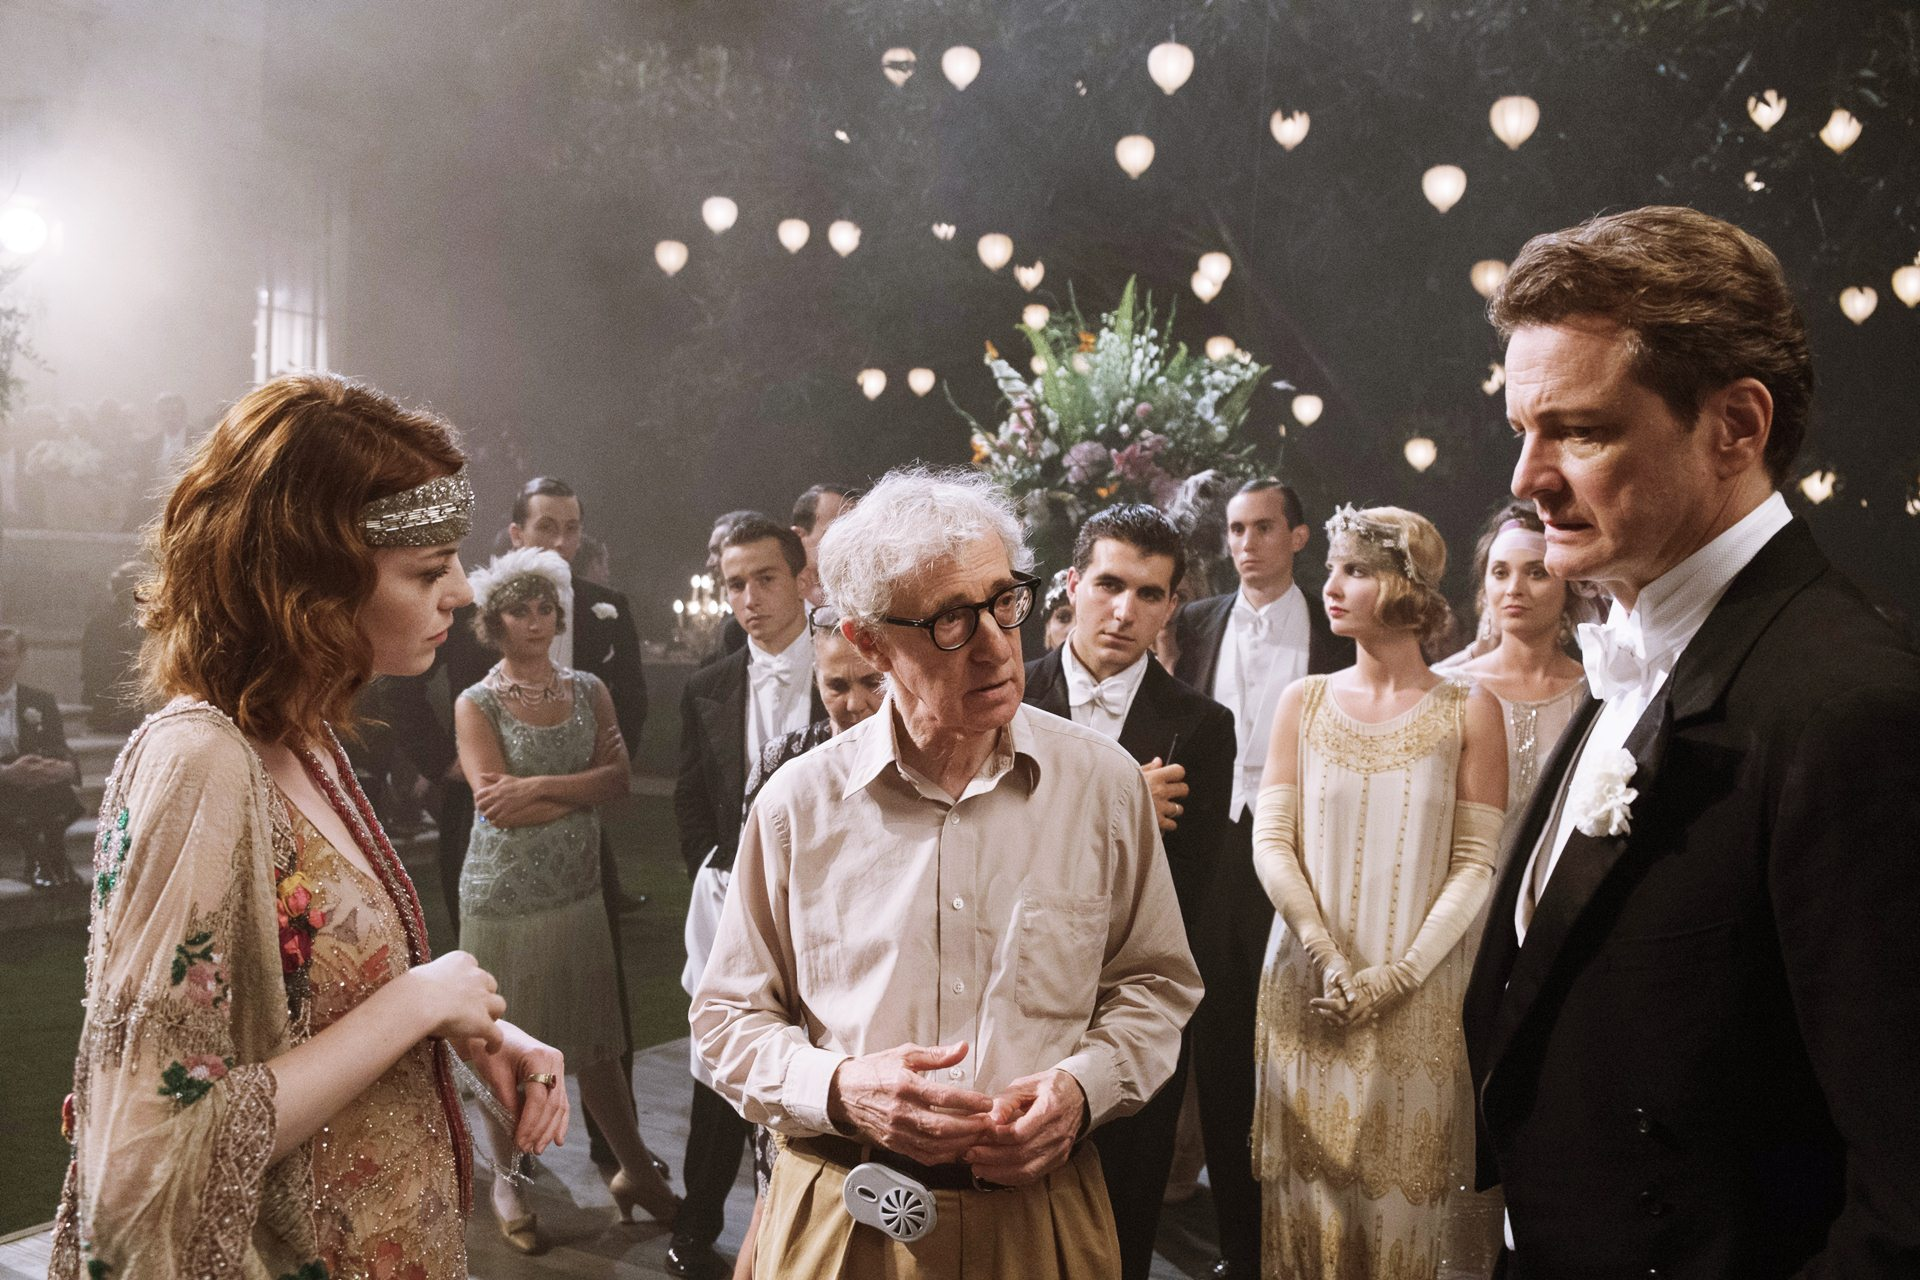 Σινεμά, Woody Allen, Magic in the moonlight, Colin Firth, Emma Stone, Γαλλική Ριβιέρα